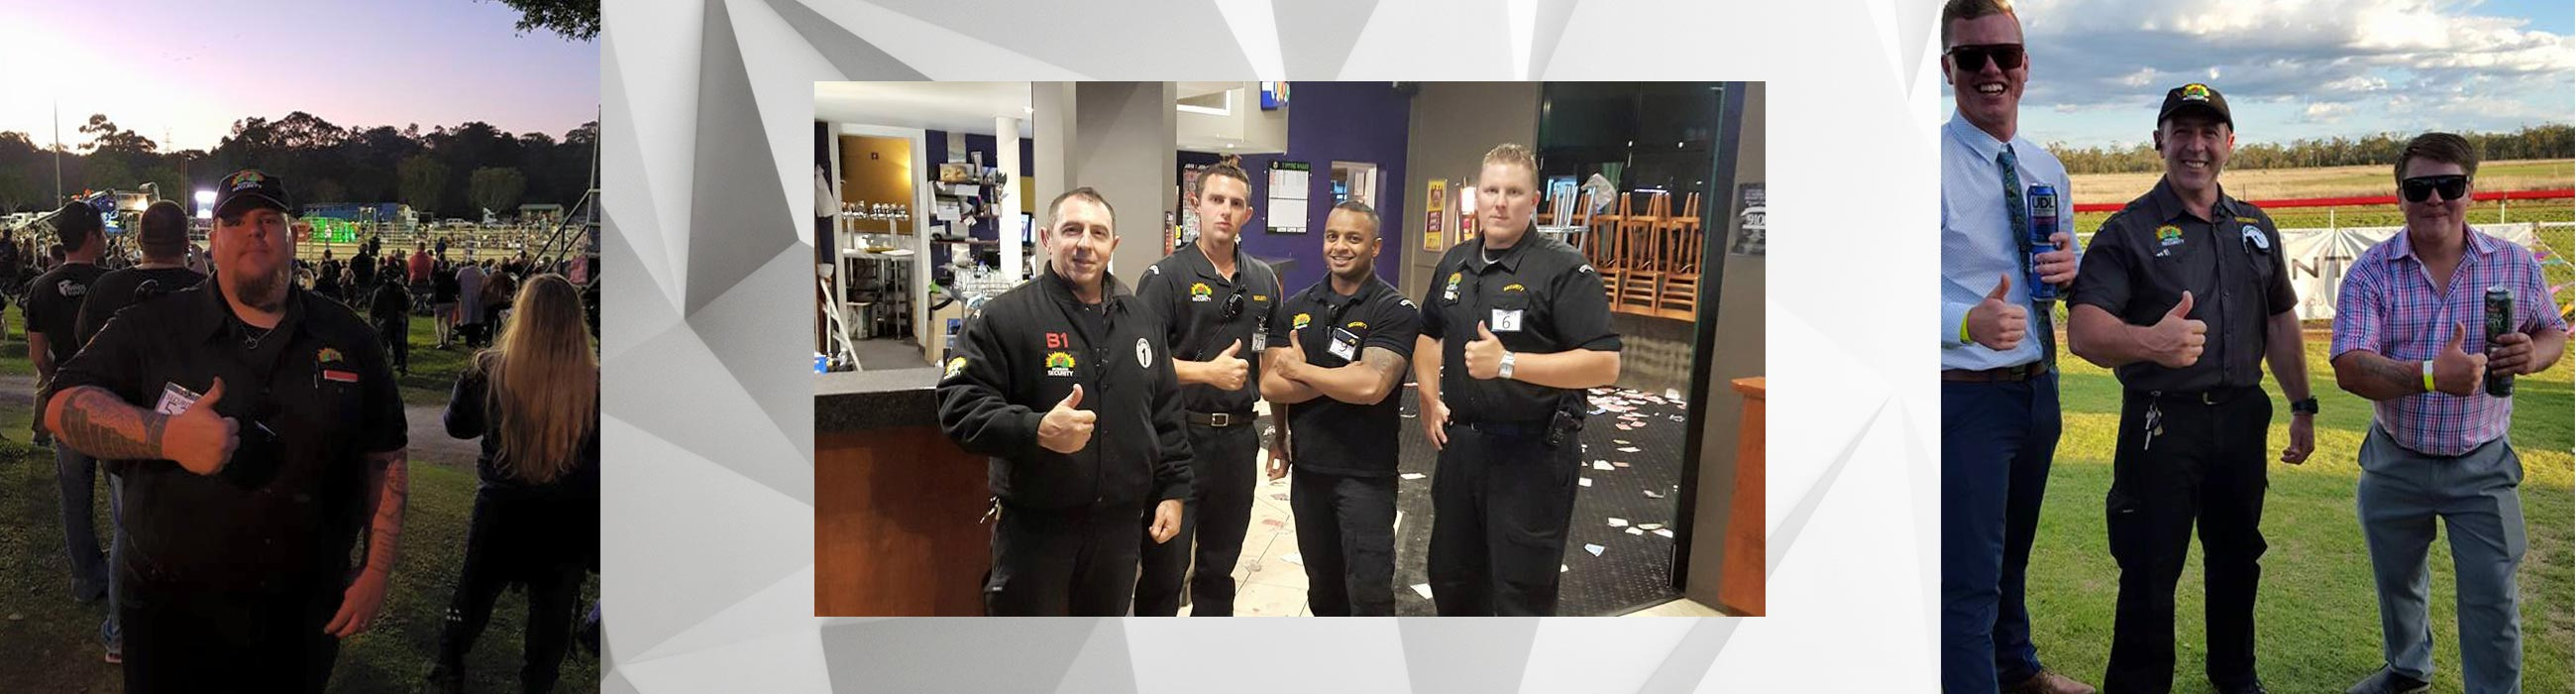 ironbark security service at different location